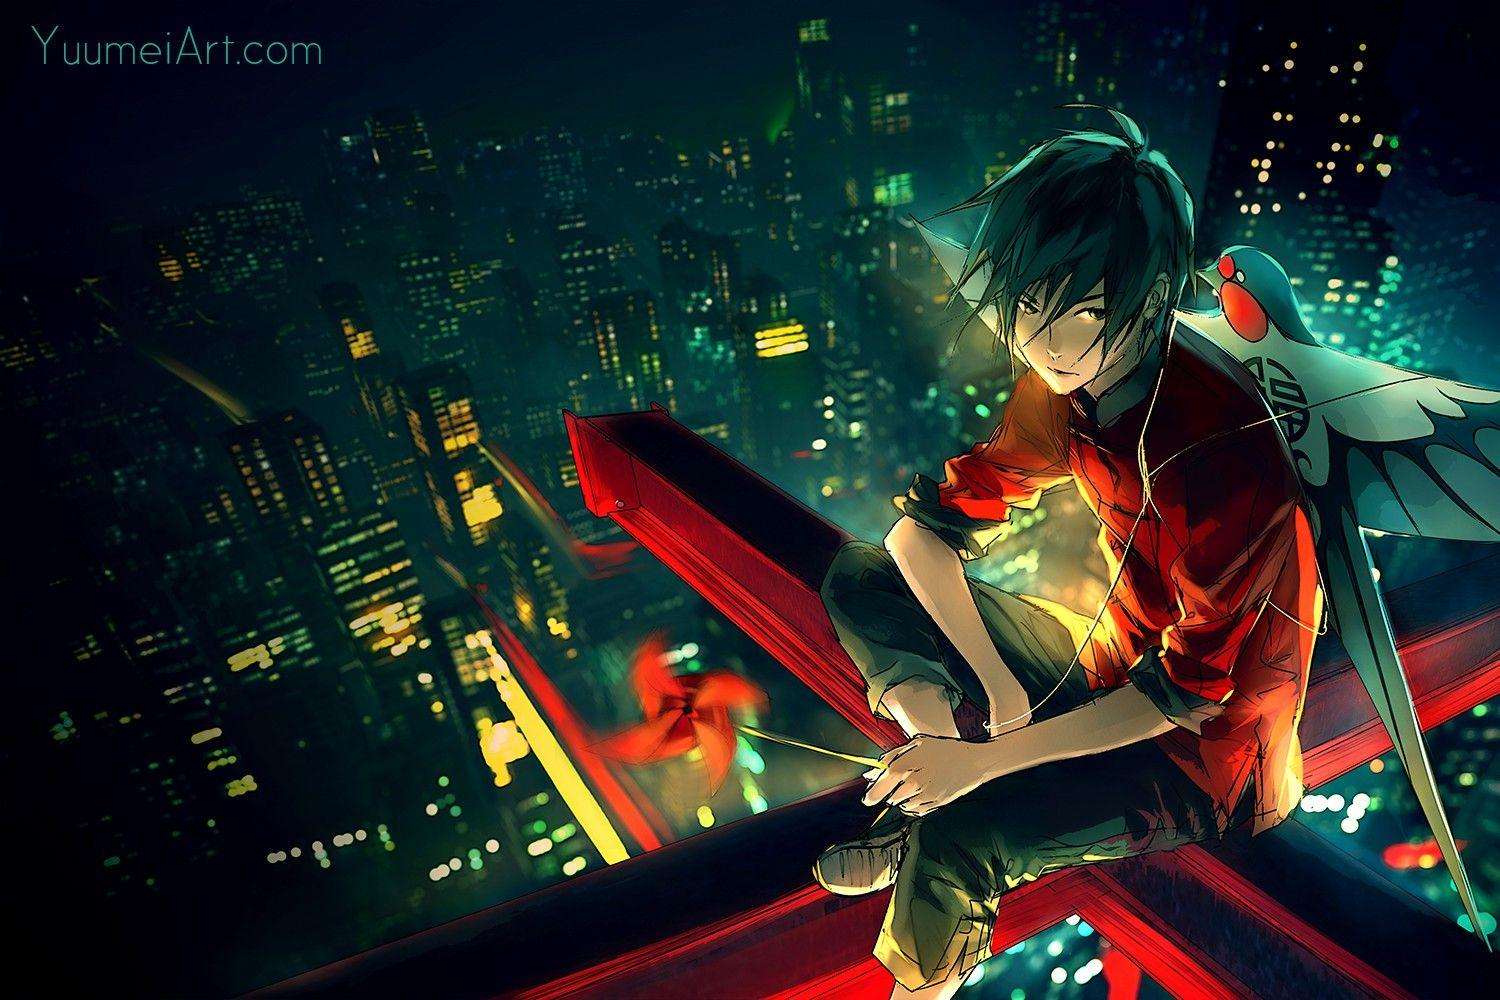 Alone Anime Wallpapers - Wallpaper Cave